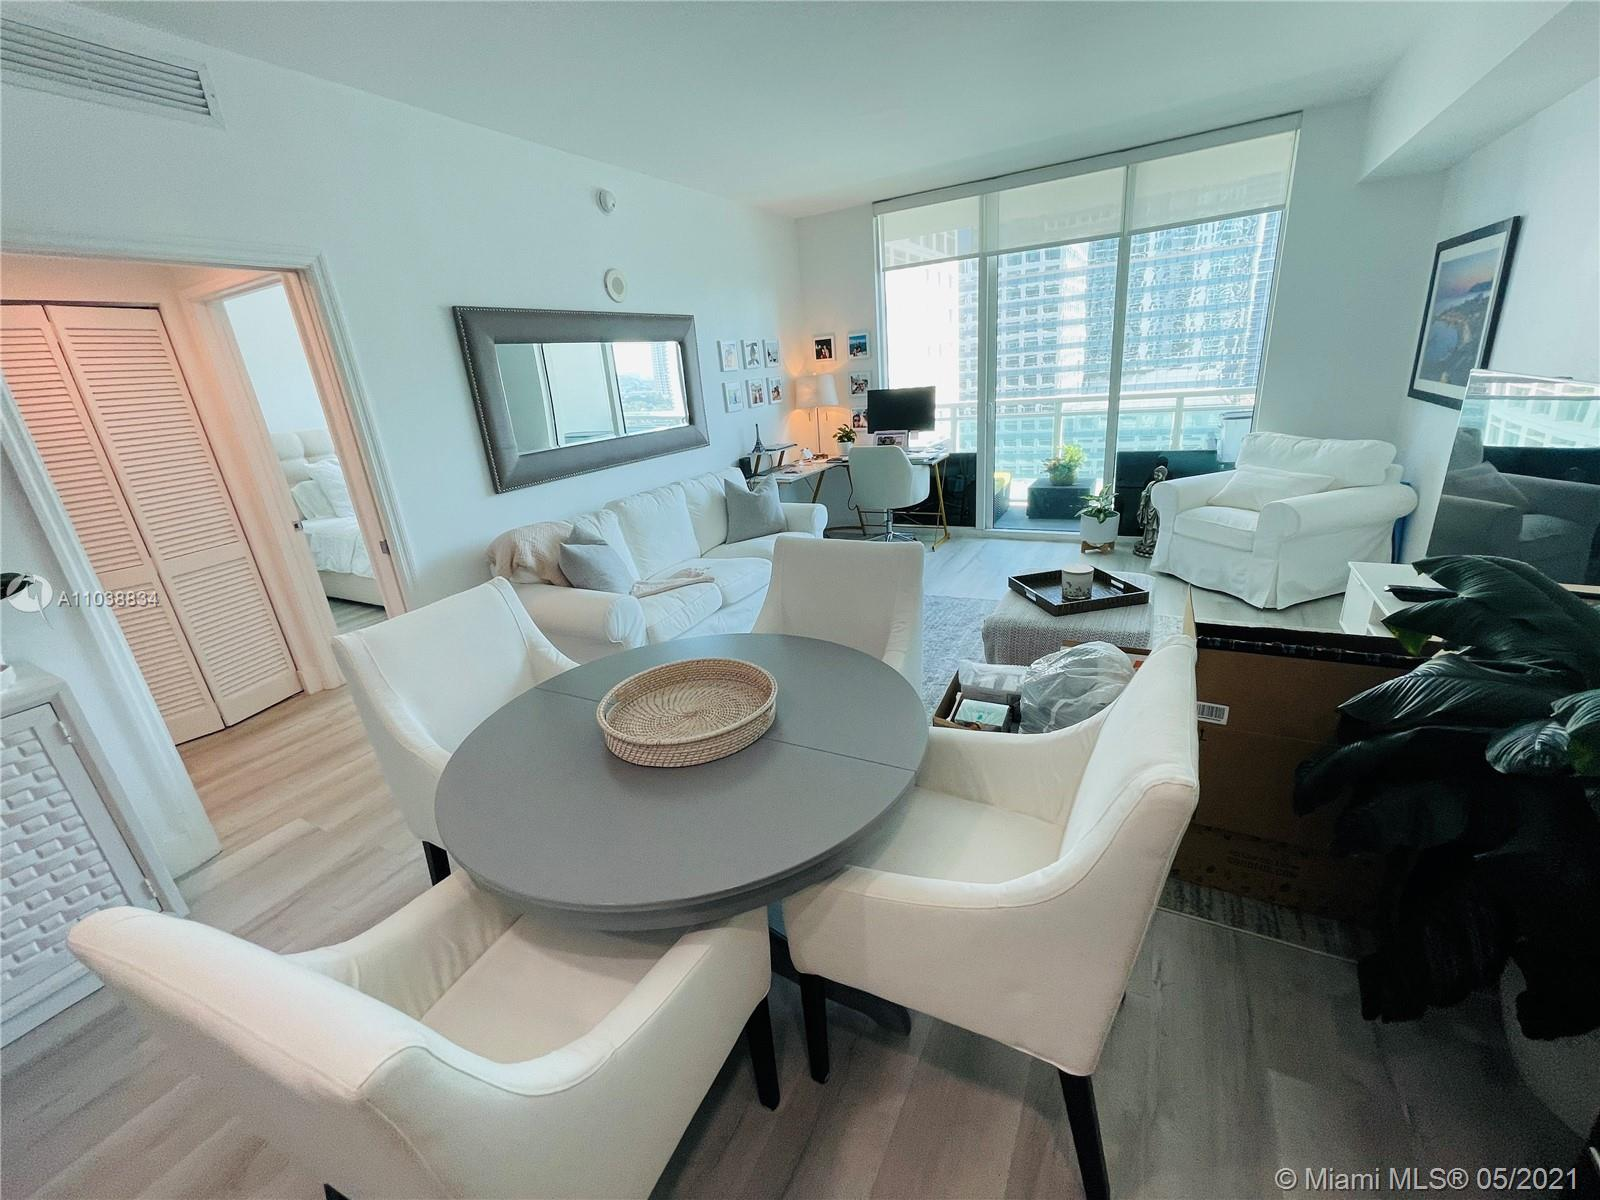 The Plaza on Brickell 1 #1408 - 950 Brickell Bay Dr #1408, Miami, FL 33131